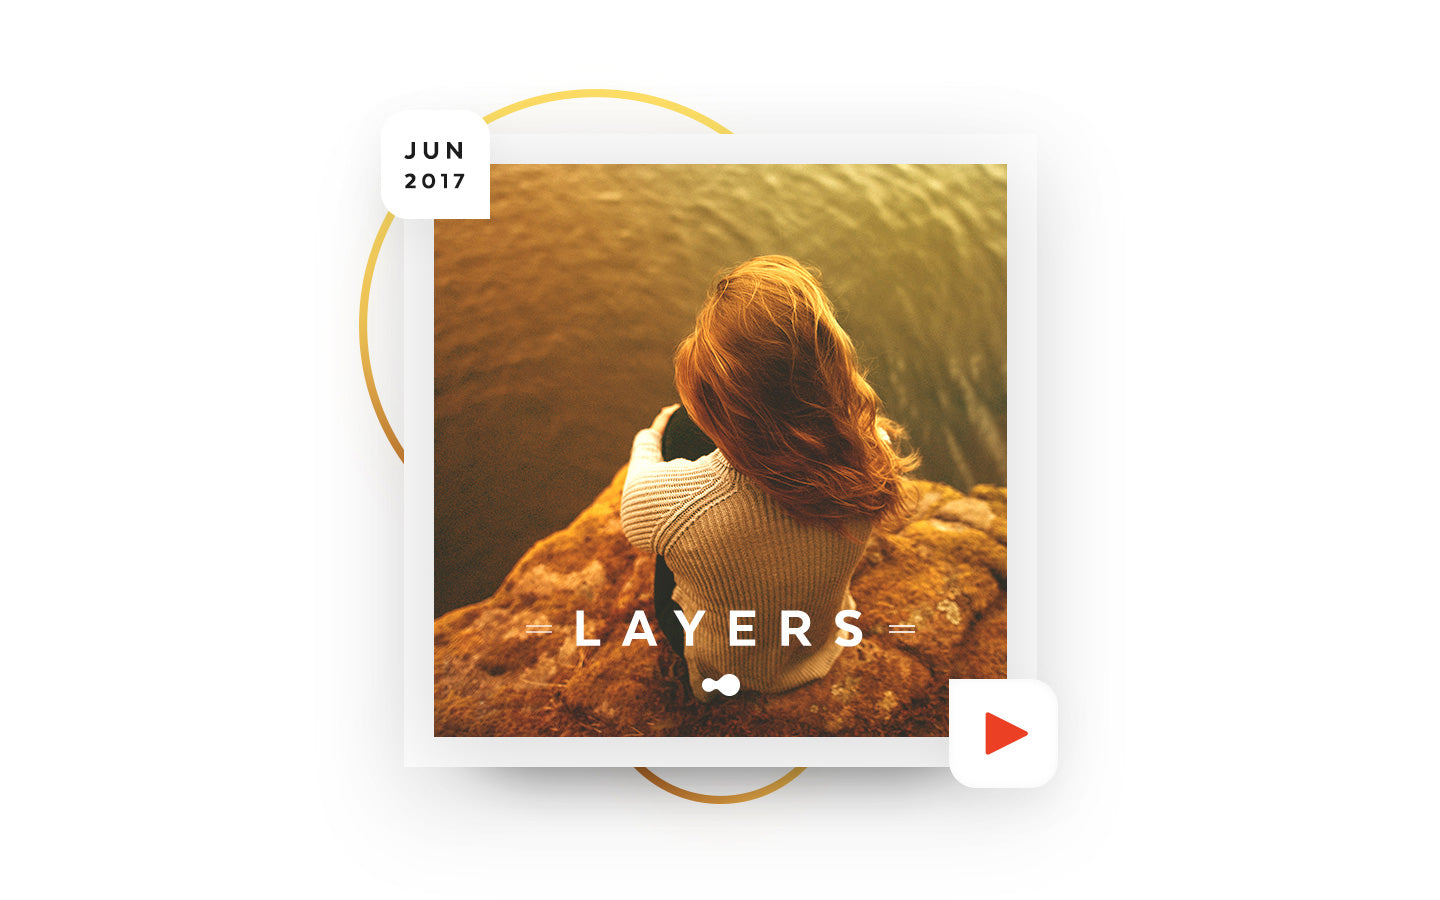 Layers Playlist